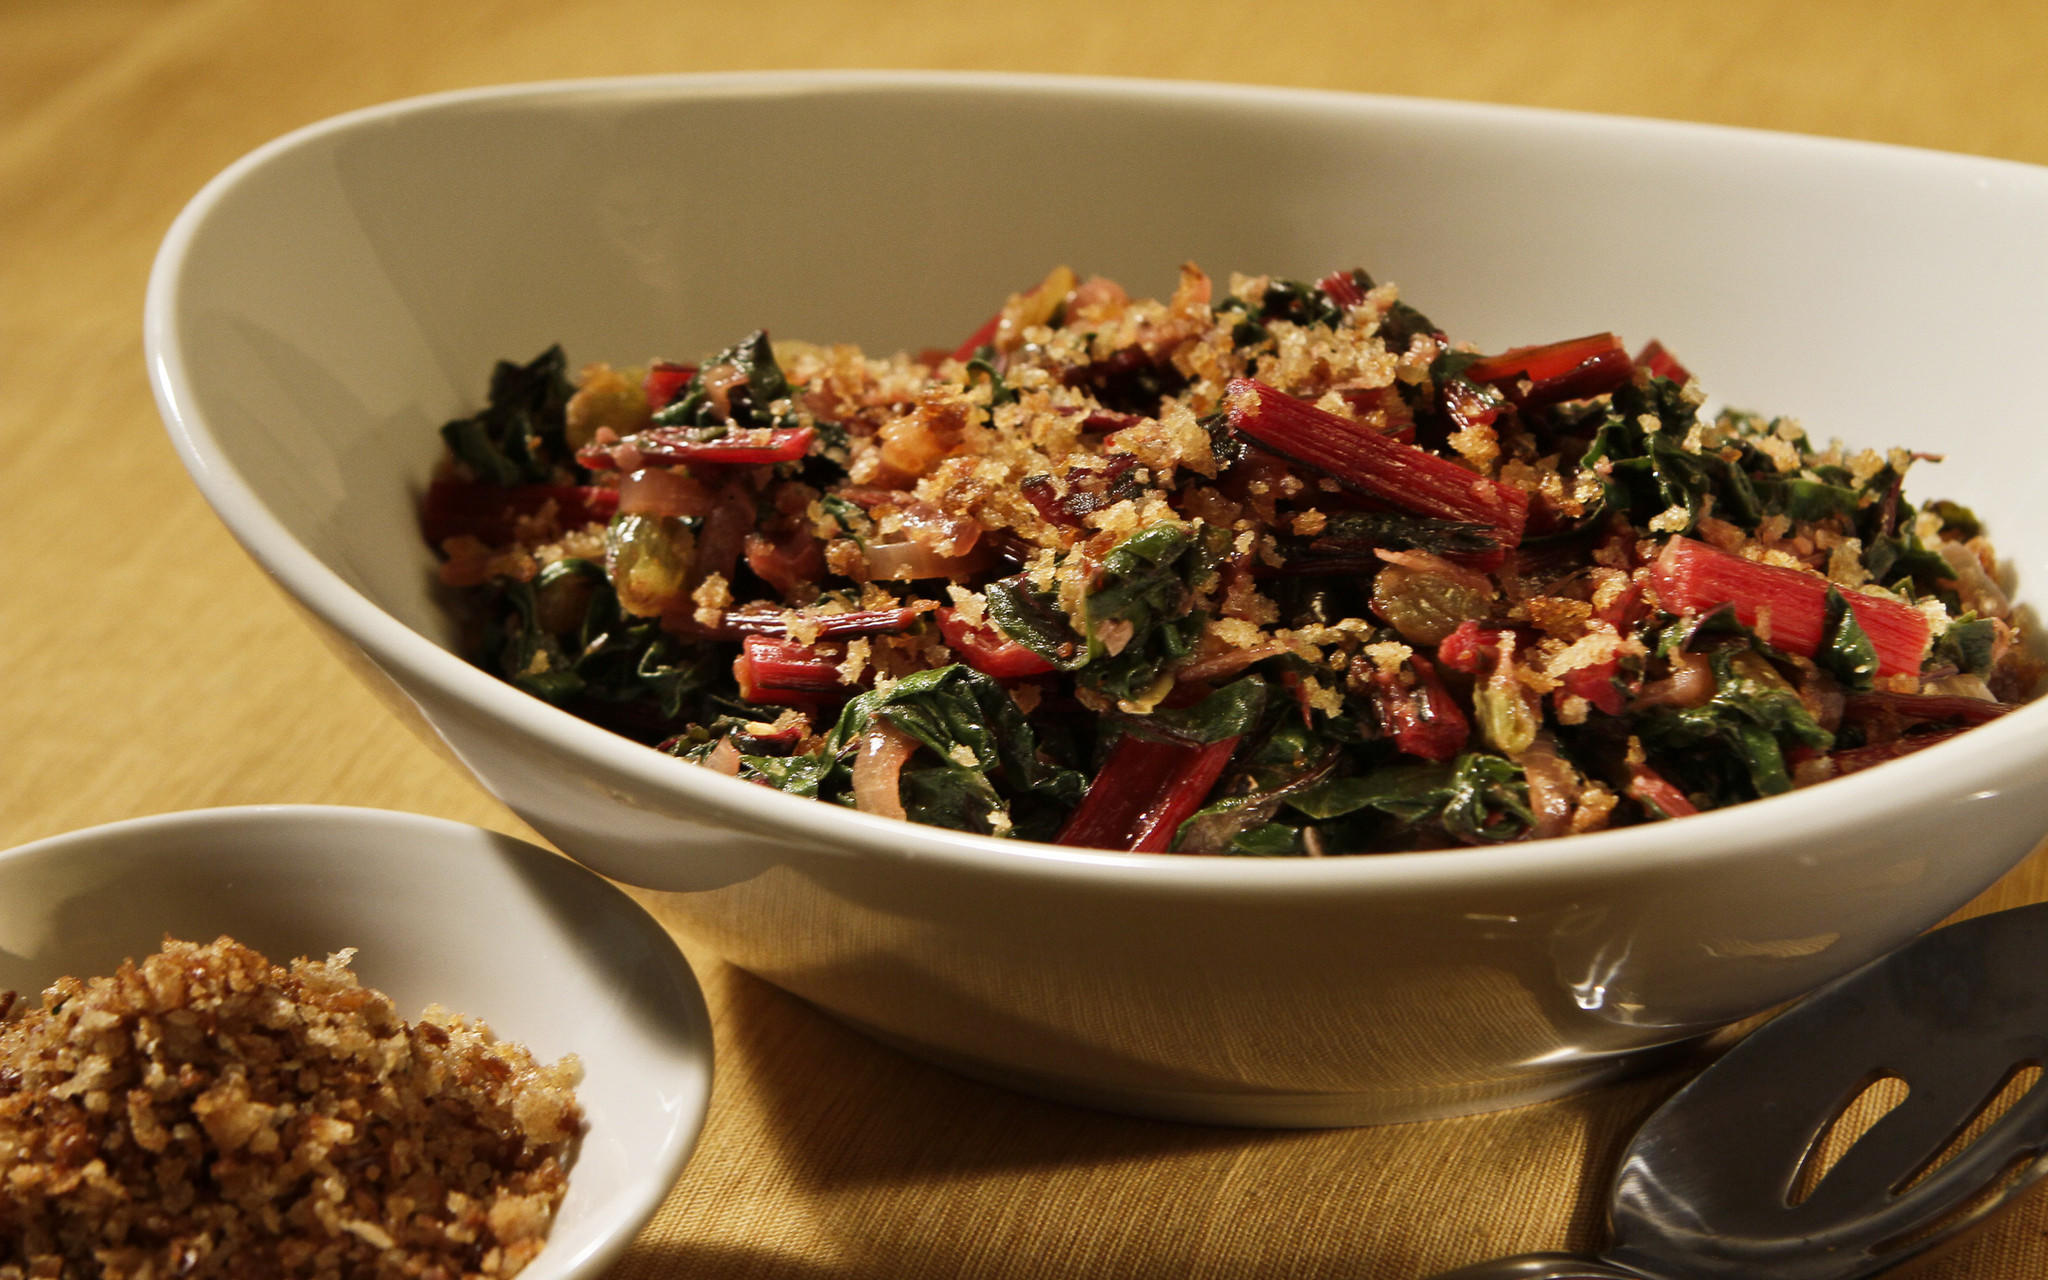 Long-simmered greens